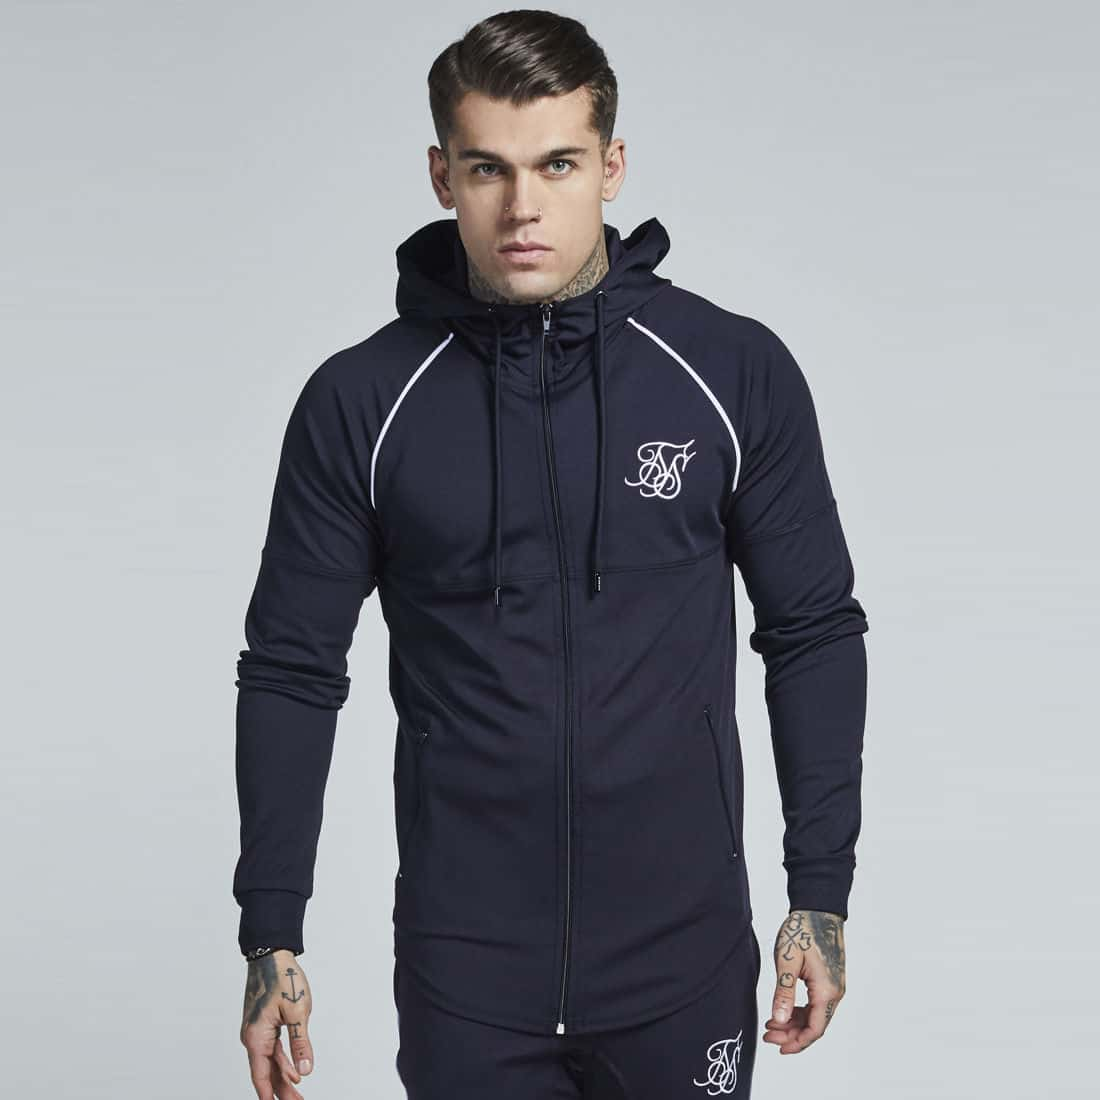 0f22ee83c3 Sik Silk Zonal Poly Tracksuit Zipped Hoodie - Navy & White